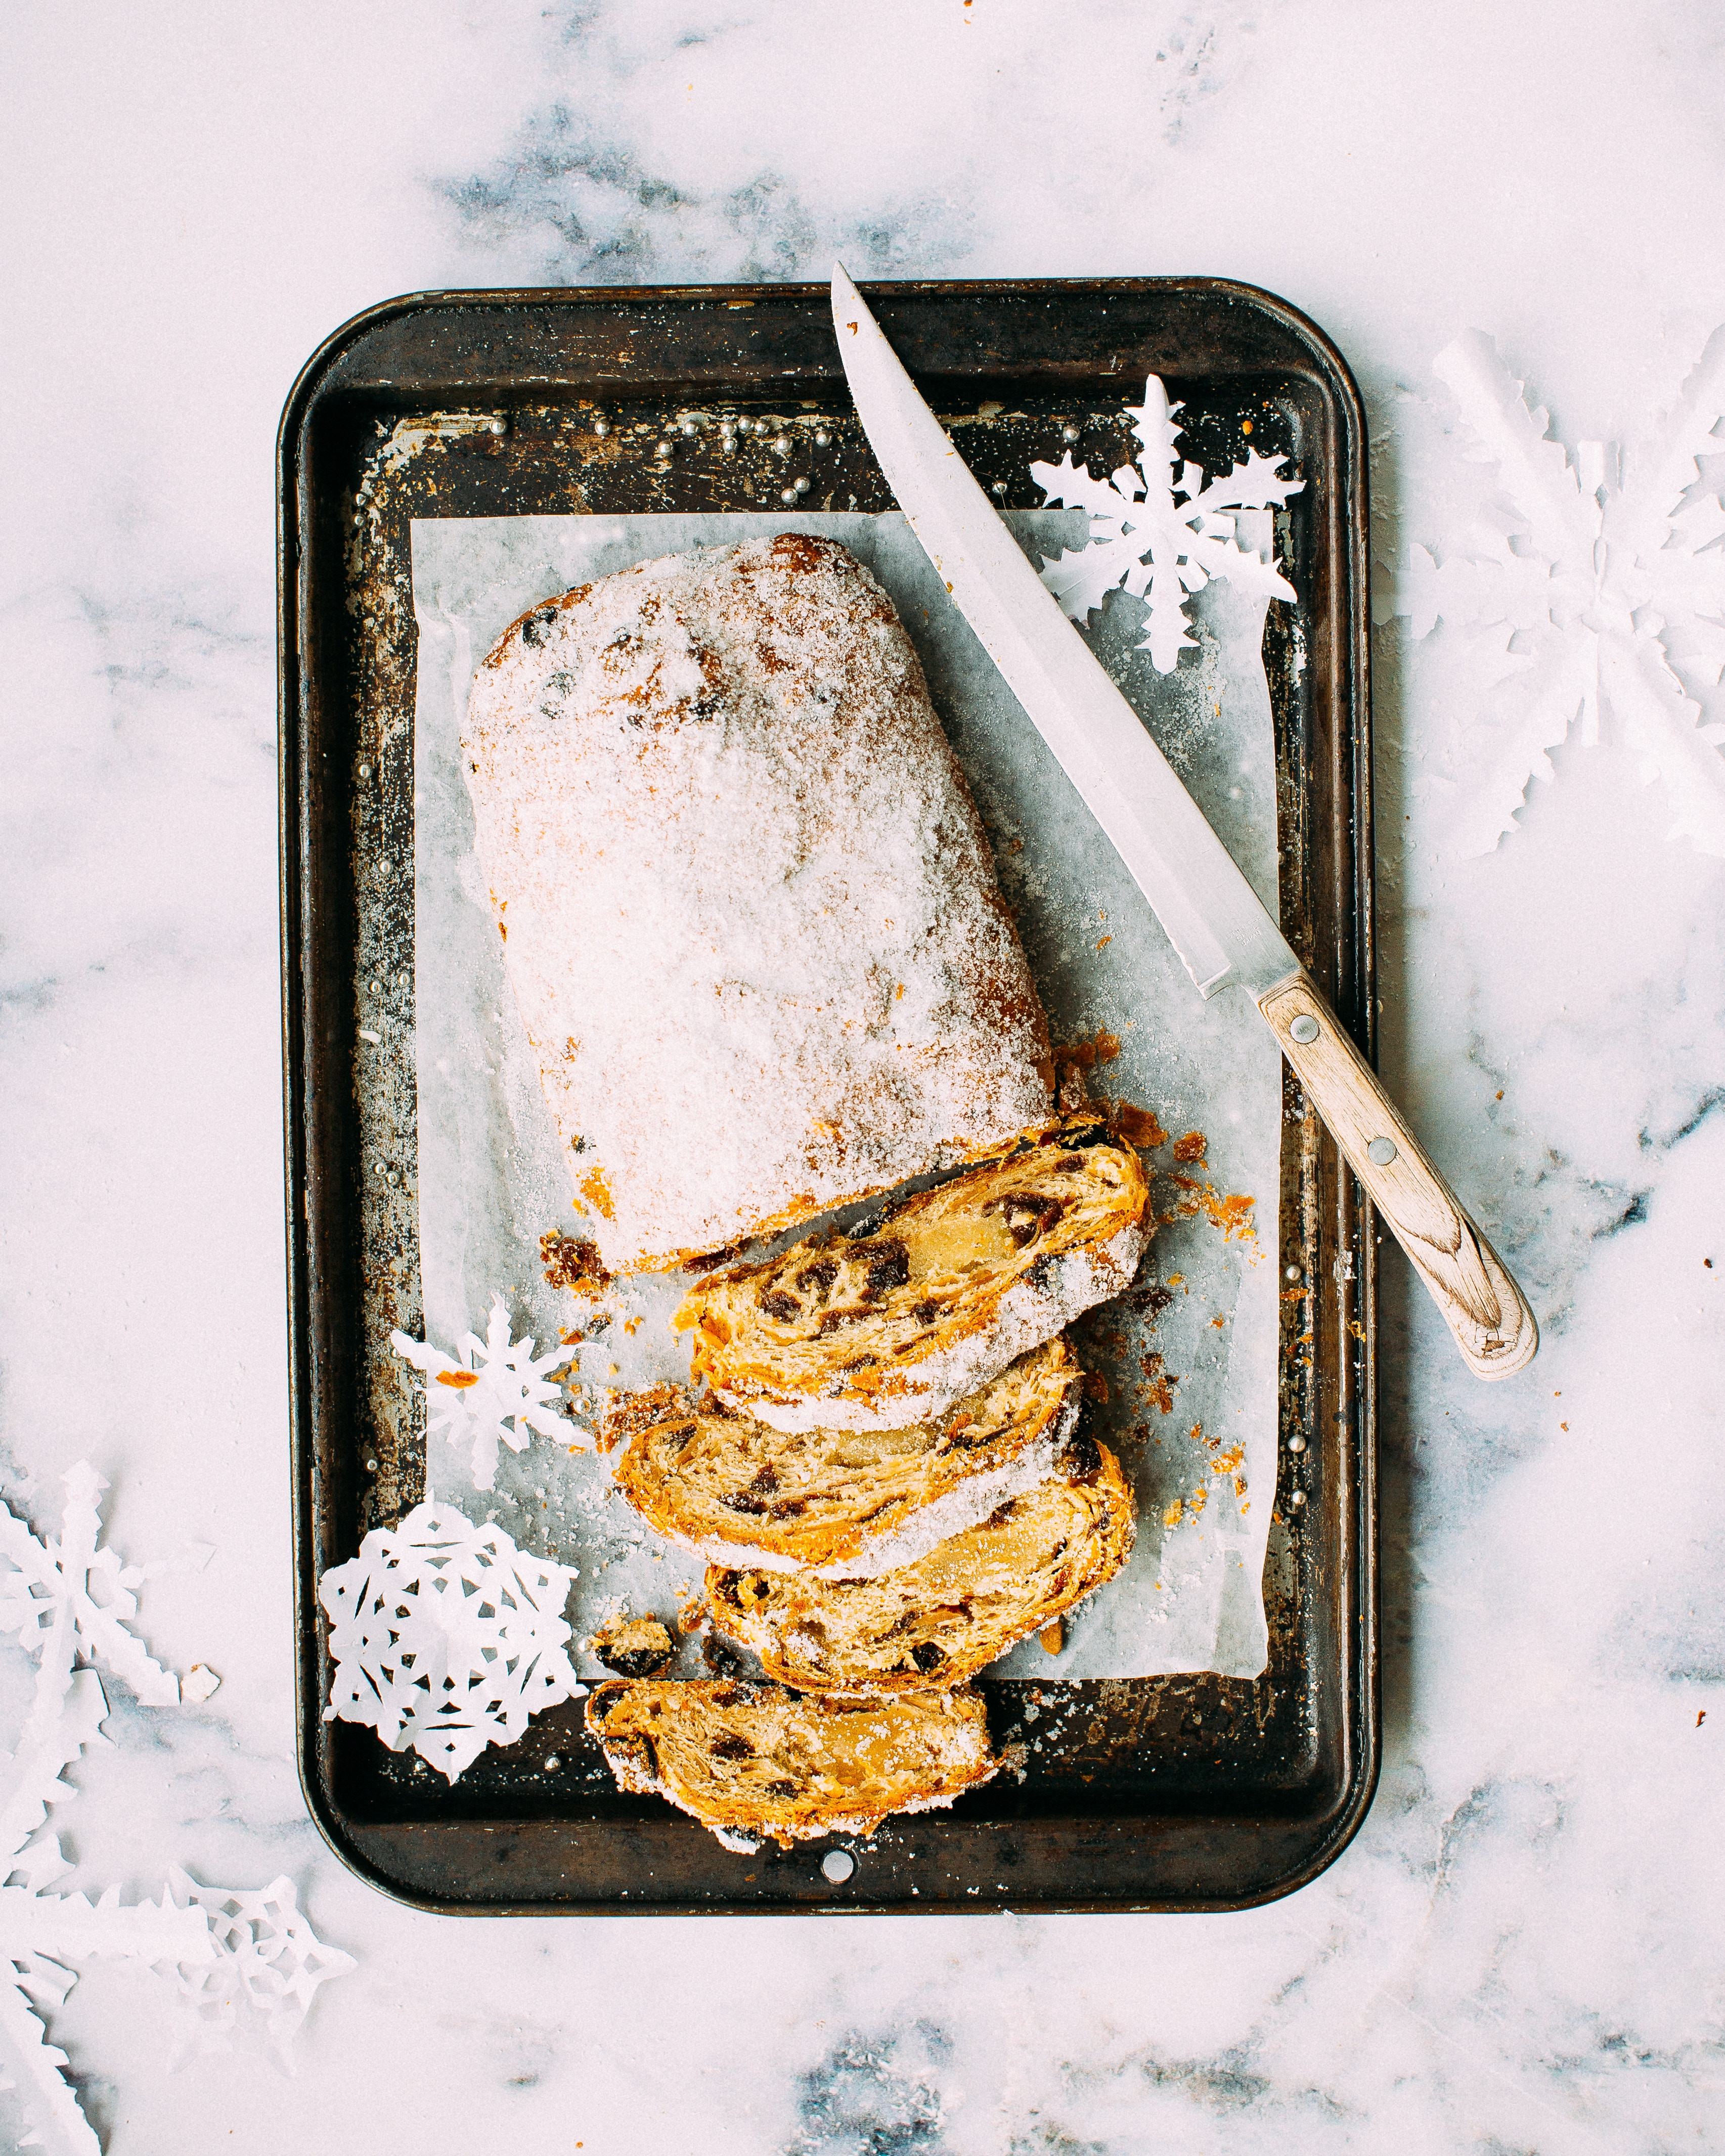 Bread of a tray with a knife and snowflakes